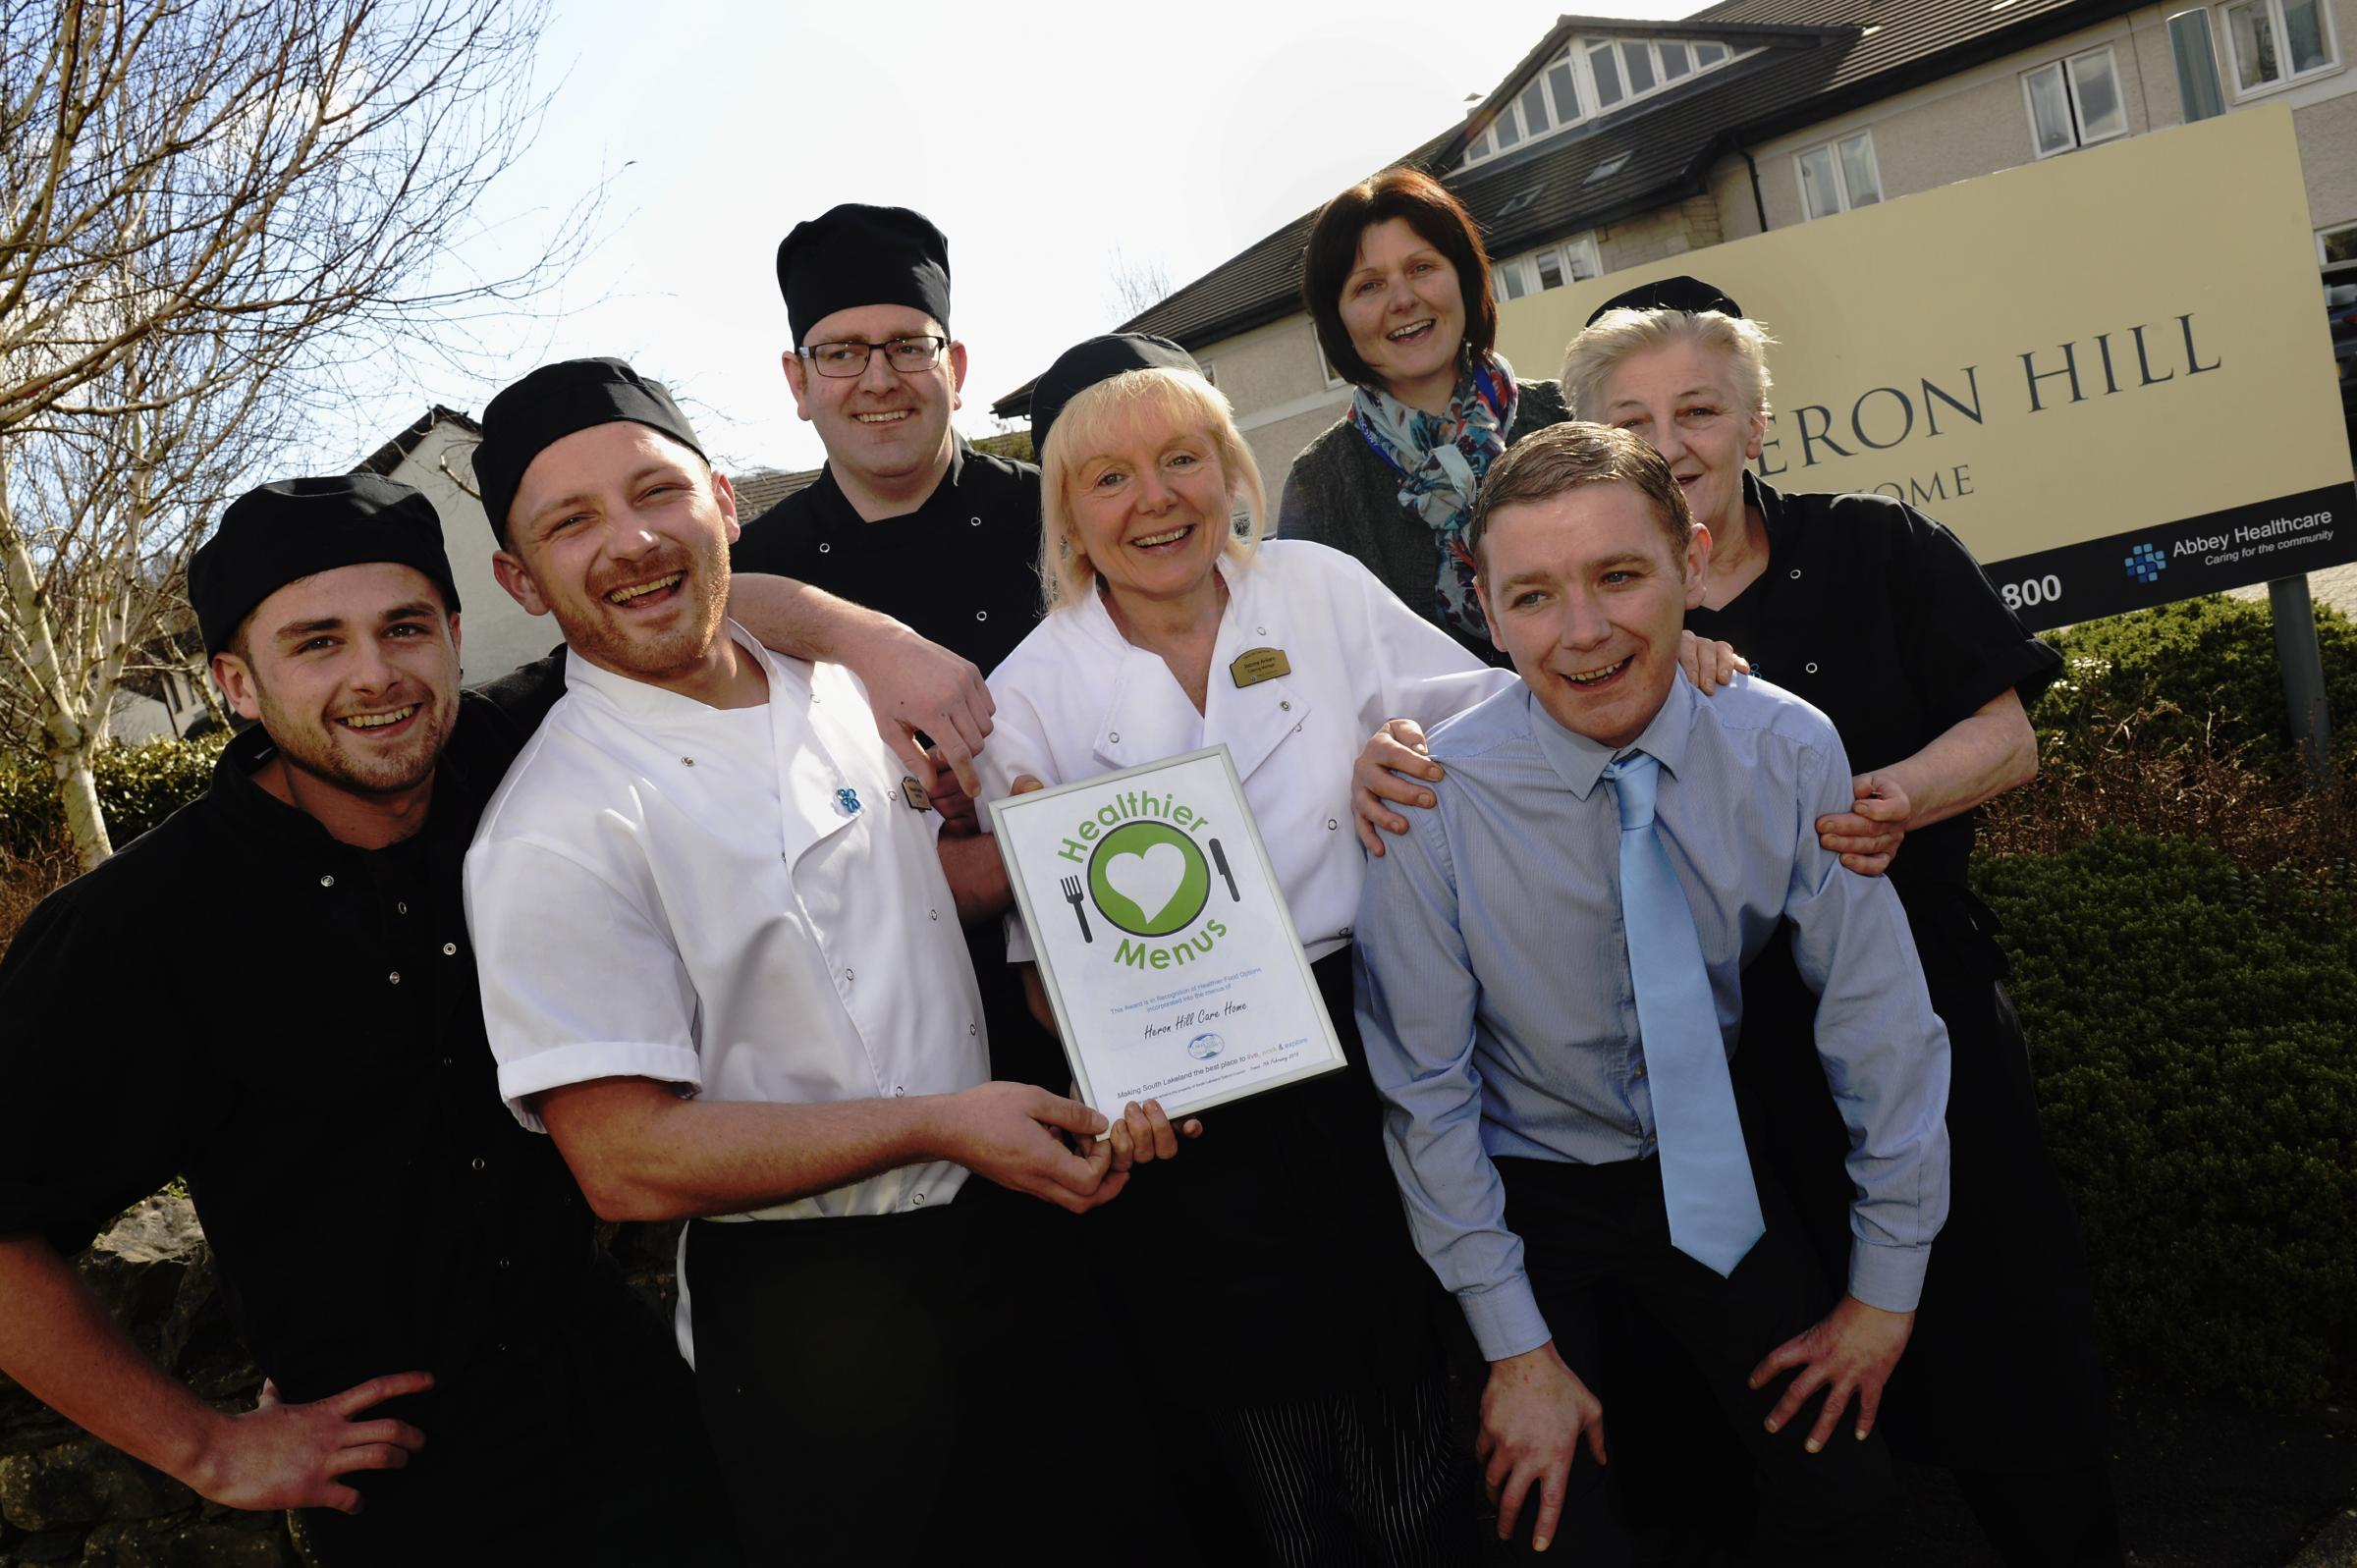 All smiles from kitchen staff members of Heron Hill care home in Kendal who are pictured with manager Adrian Wheawall (front), after receiving a healthy eating award from SLDC's environmental health officer Hilary Fawcett (back right). They are Kurtis